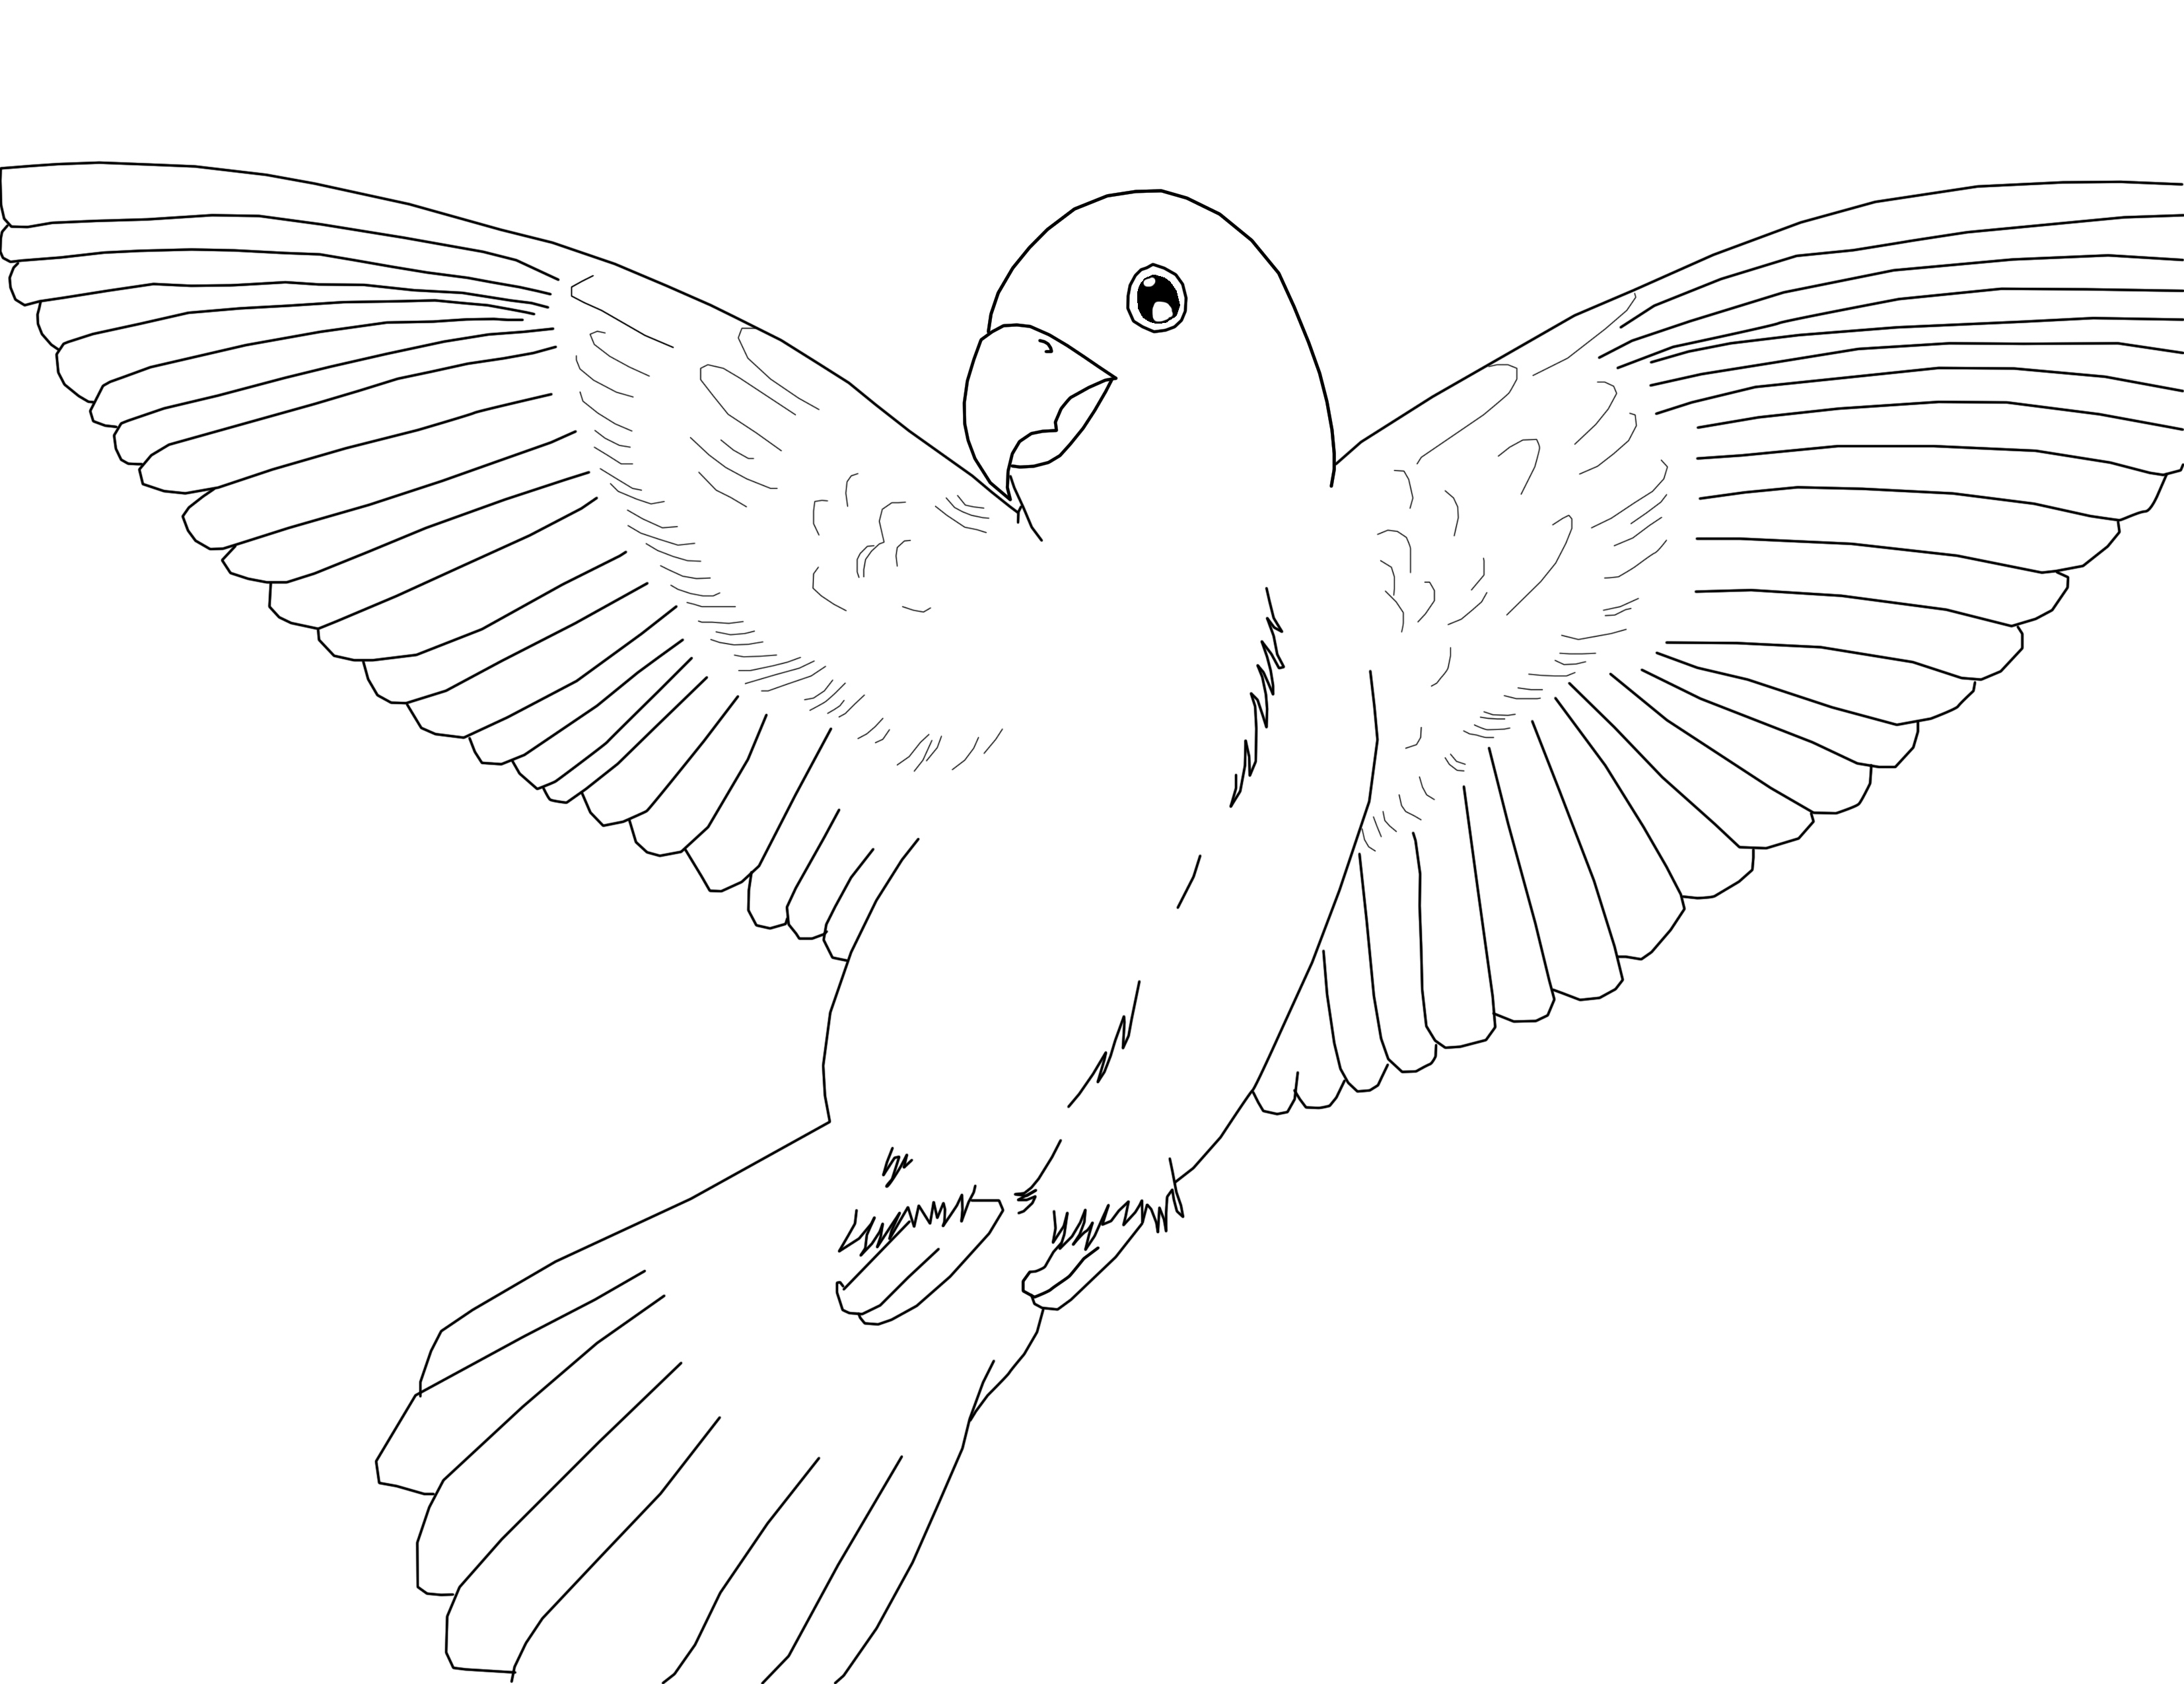 coloring pages of parrots parrots coloring pages to download and print for free parrots pages coloring of